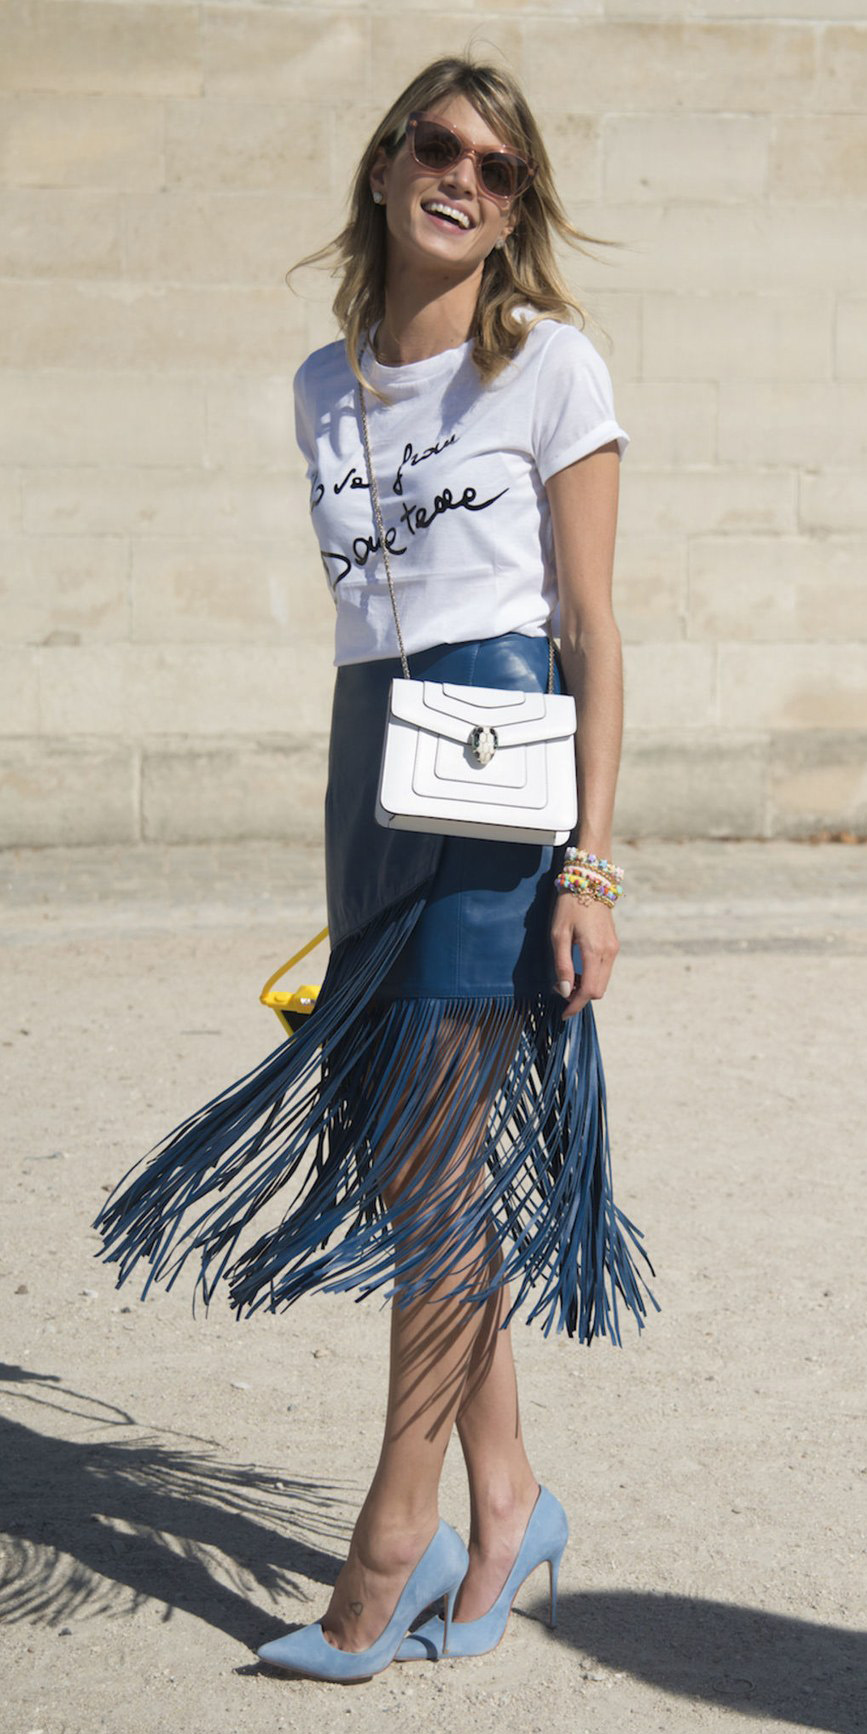 blue-med-midi-skirt-fringe-carwash-white-bag-white-graphic-tee-blonde-sun-blue-shoe-pumps-bracelet-spring-summer-lunch.jpg